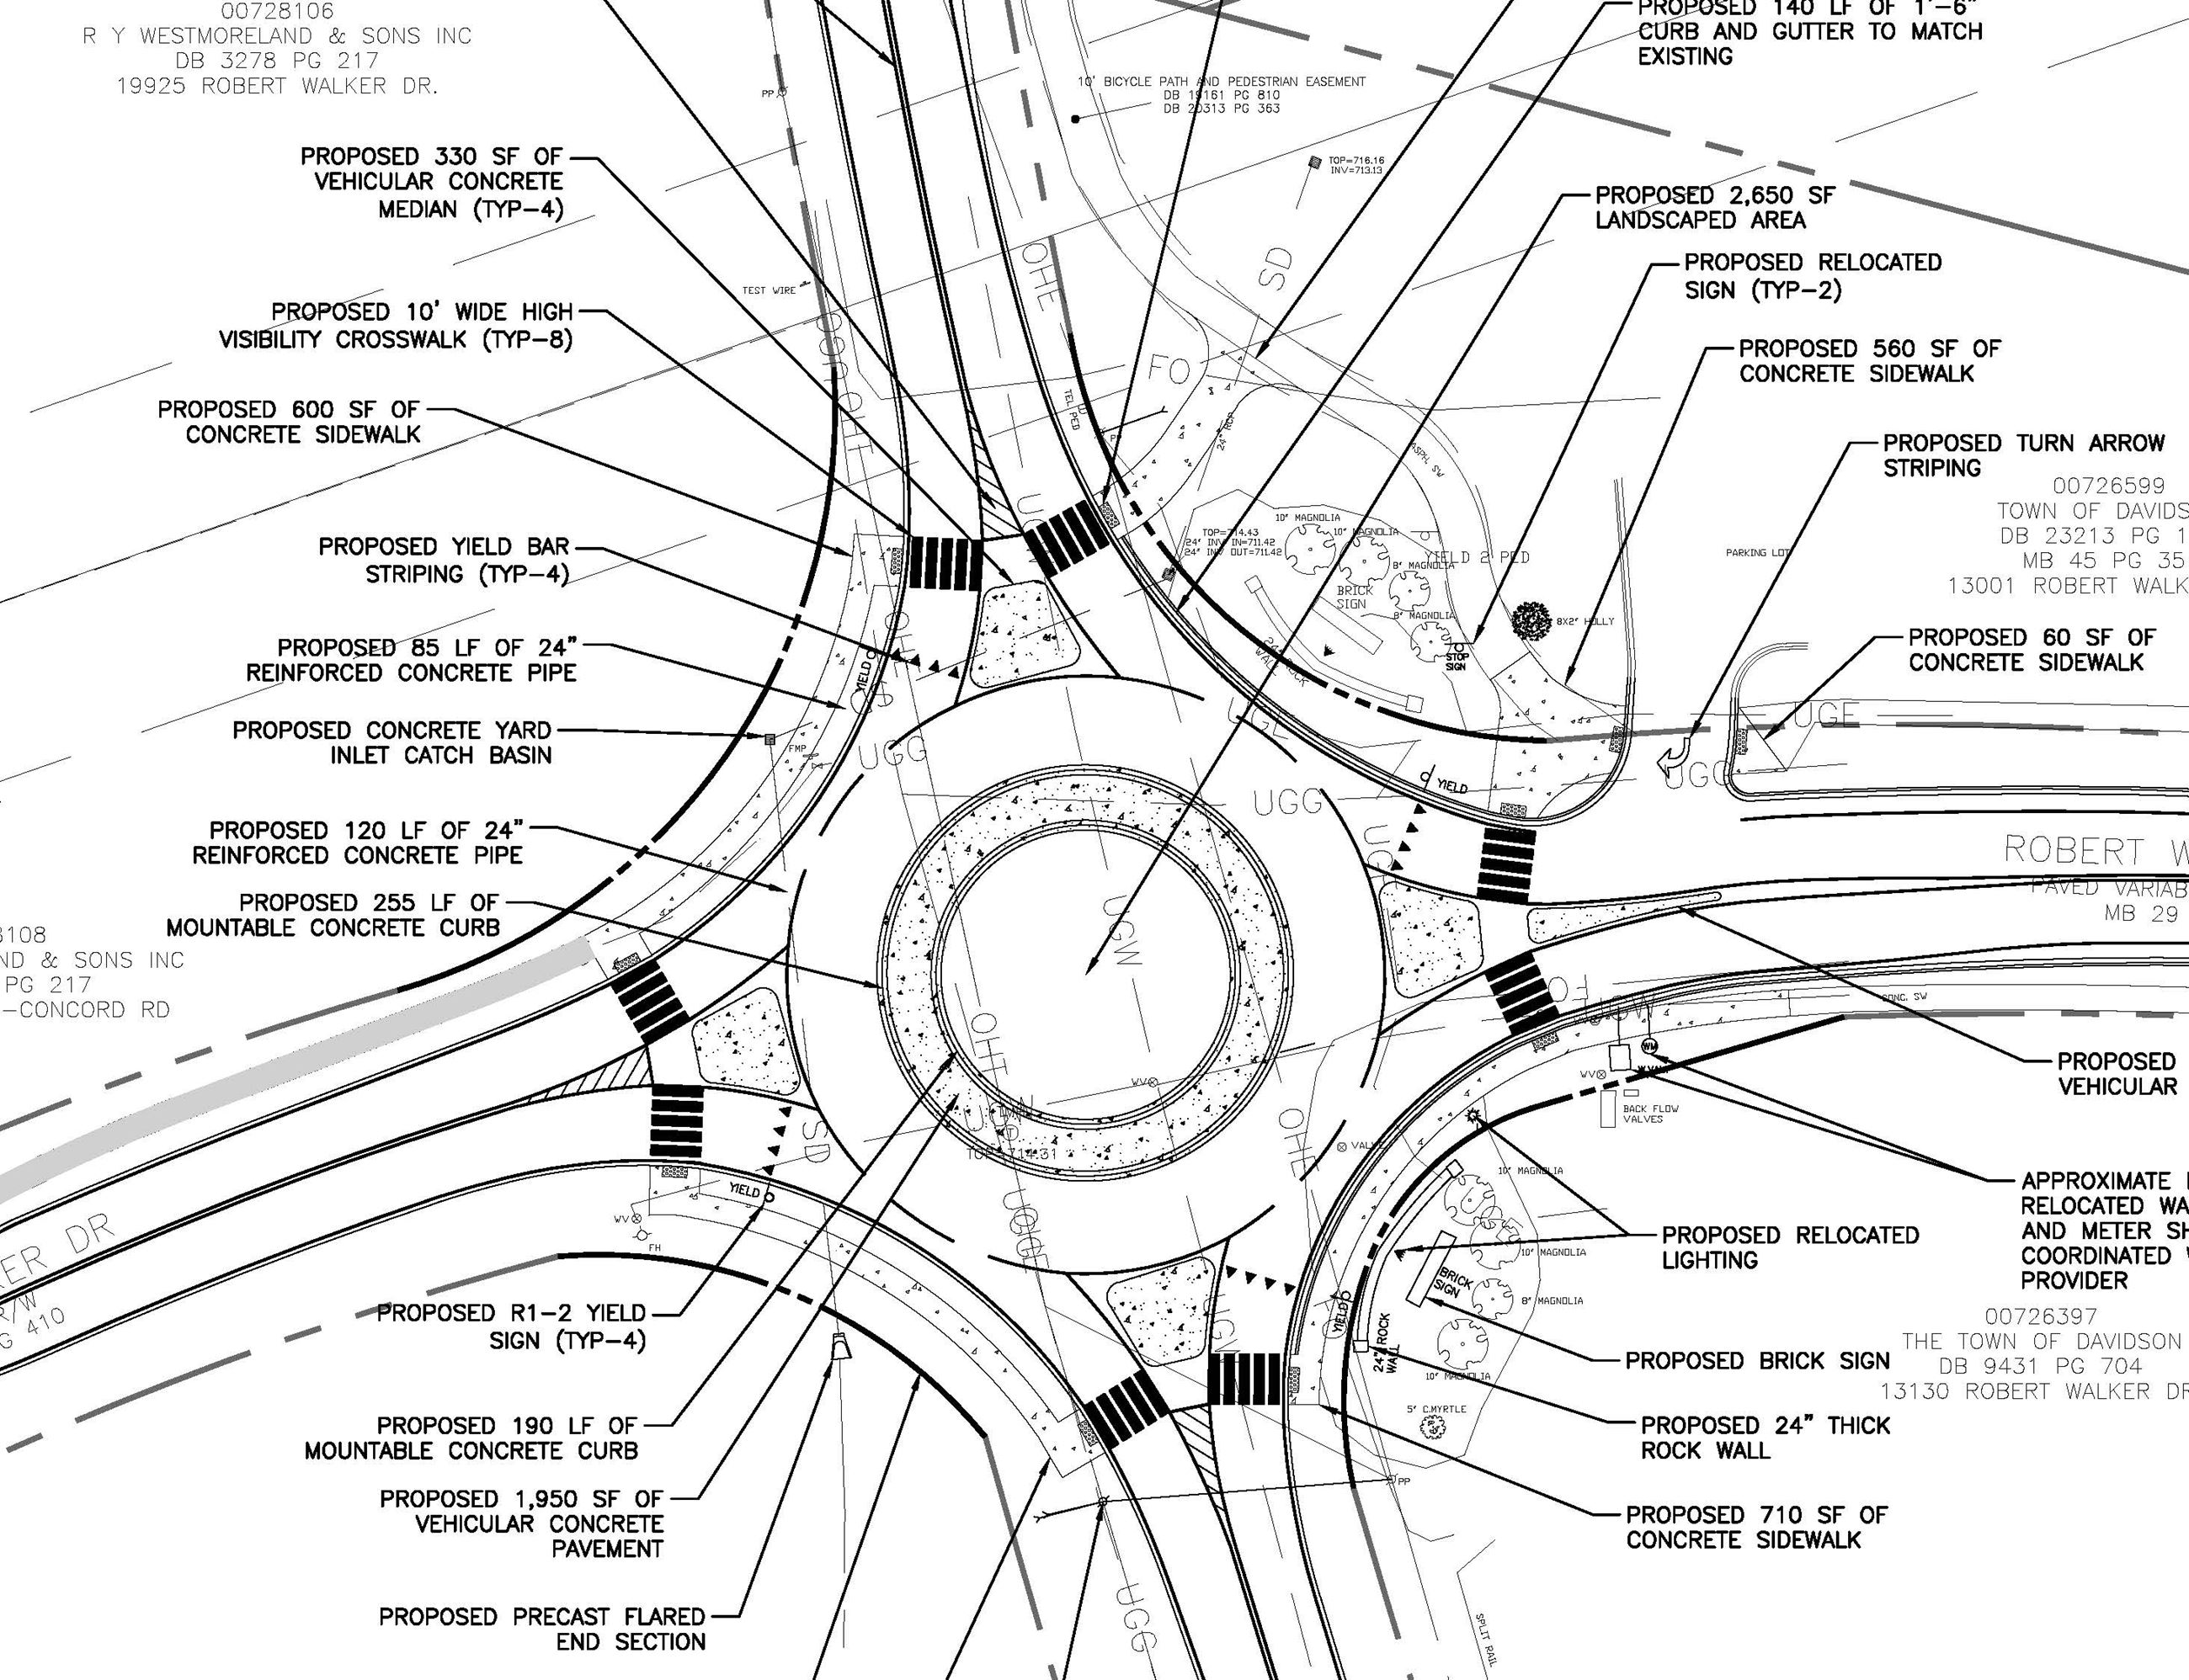 2016.10.31_SITE PLAN_Robert Walker roundabout